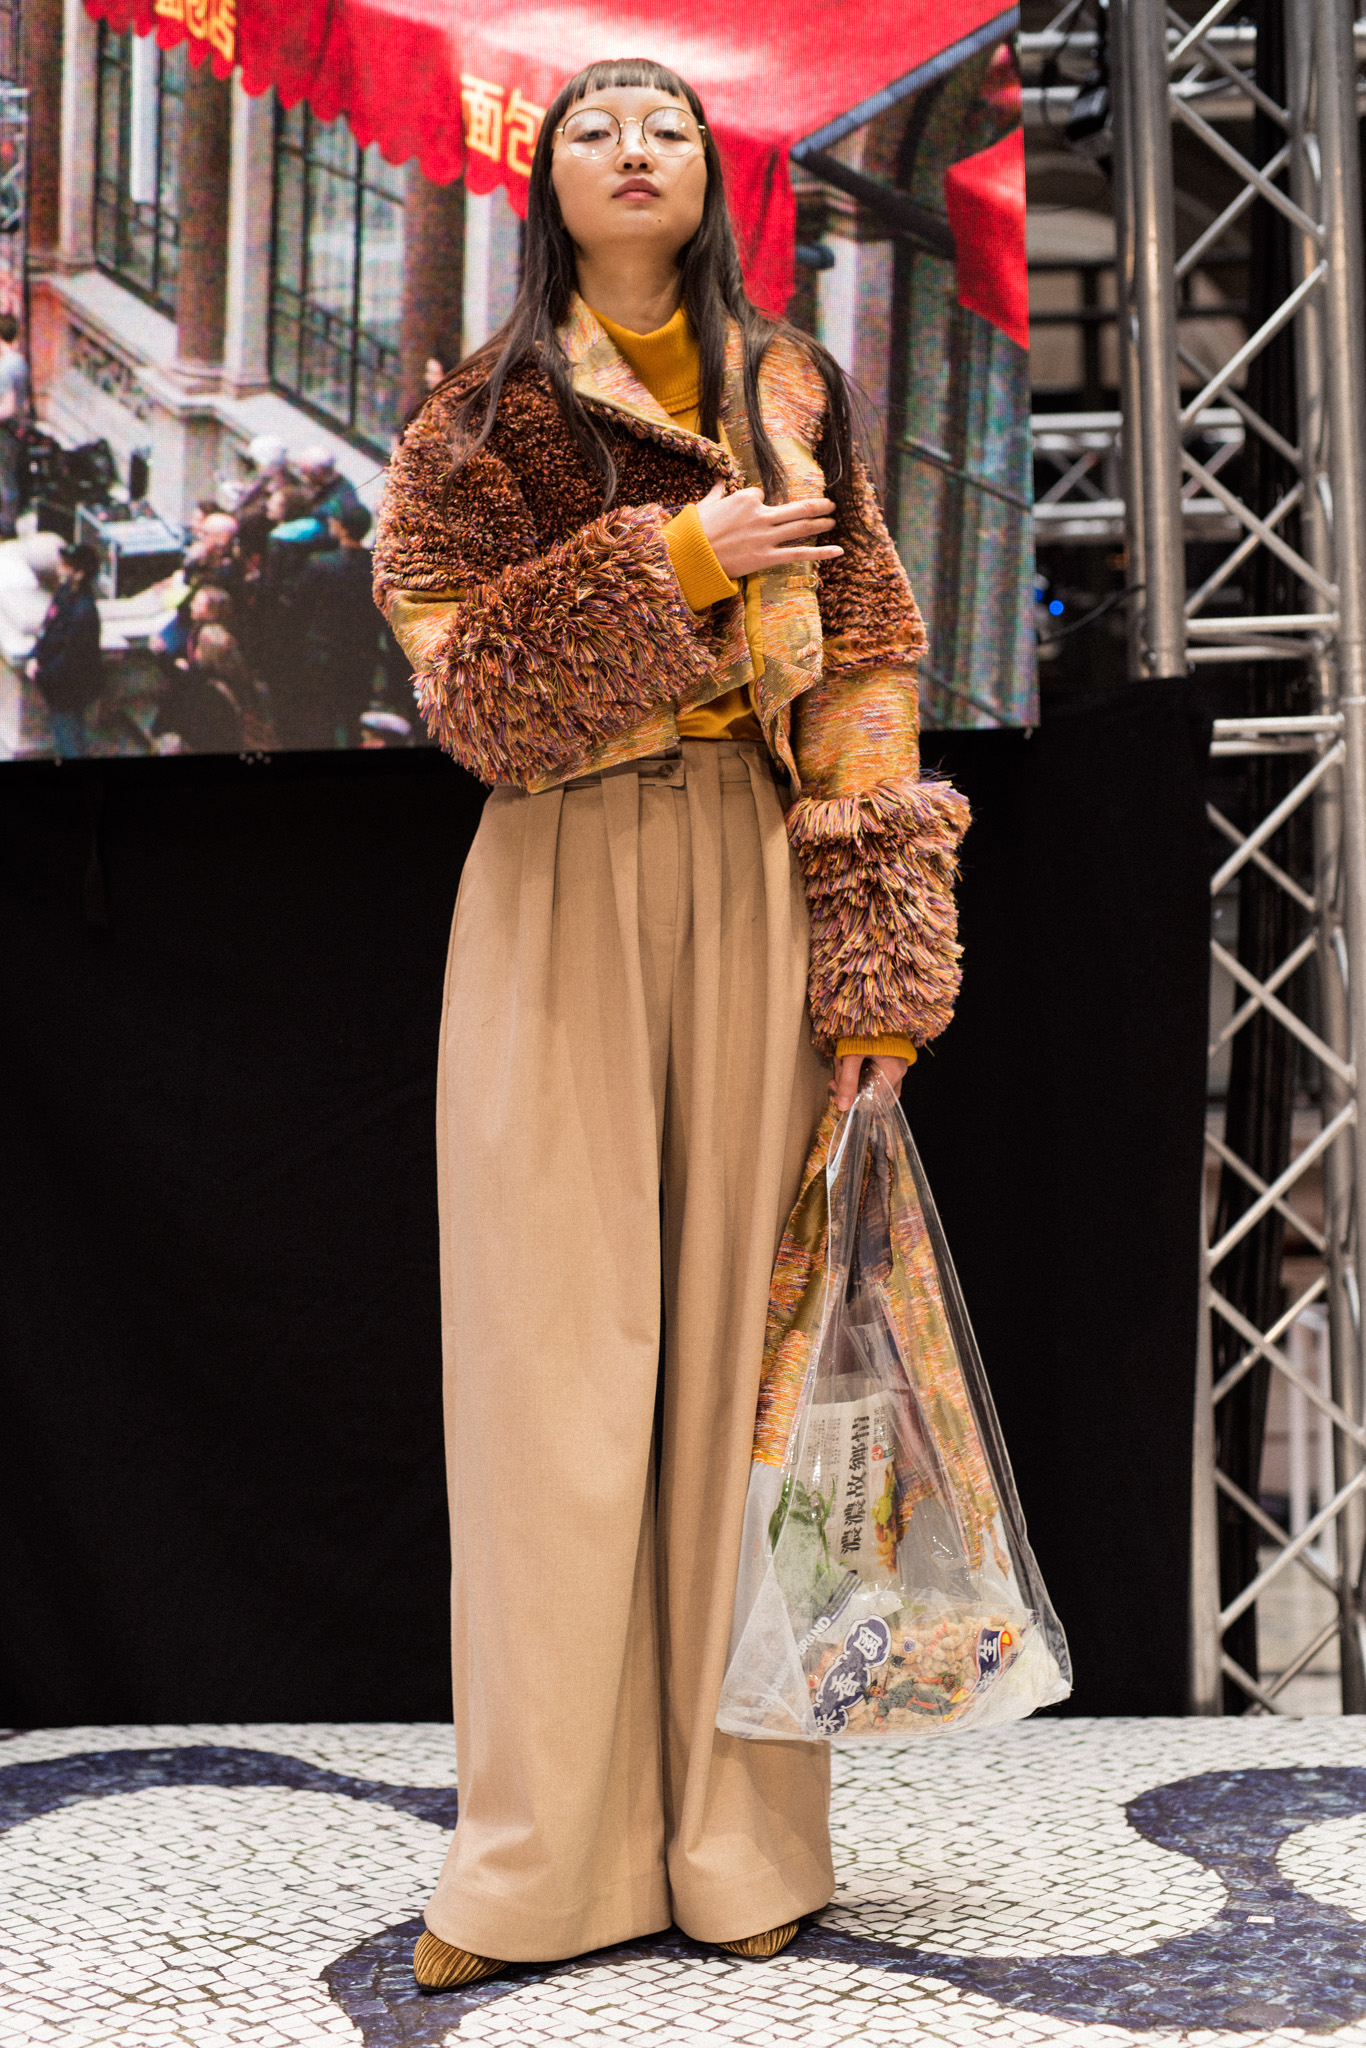 steventai jungle magazine London fashion week Sanne glasbergen